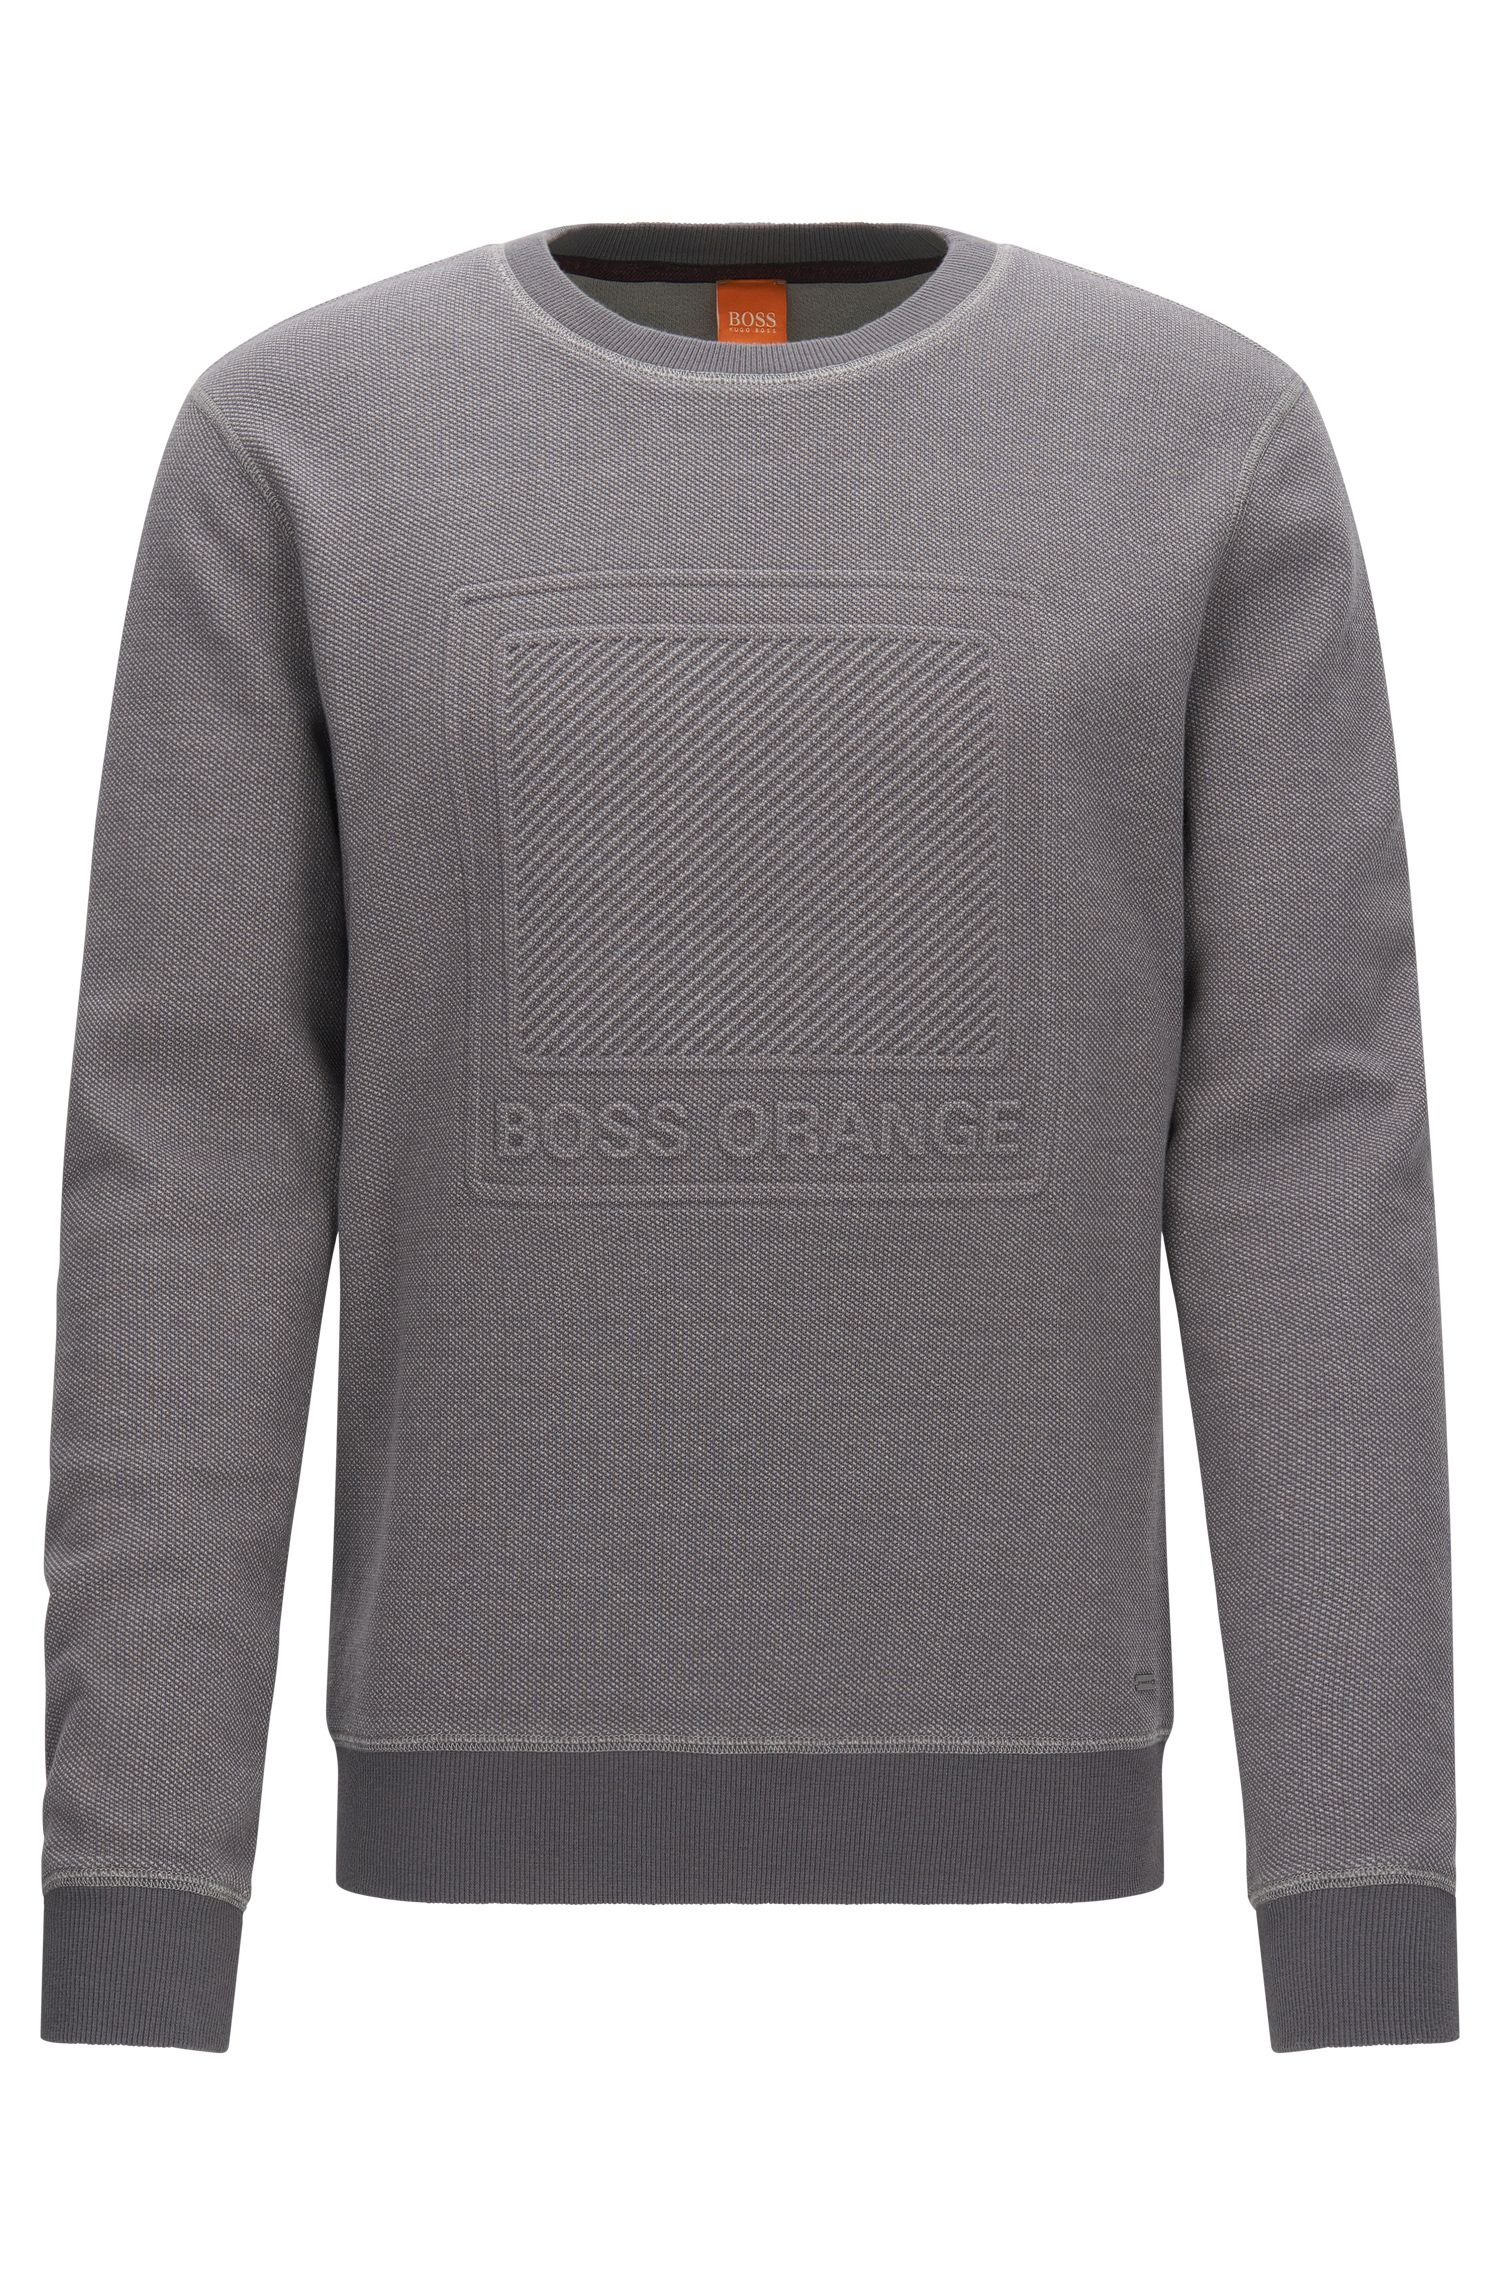 Cotton sweater with embossed logo